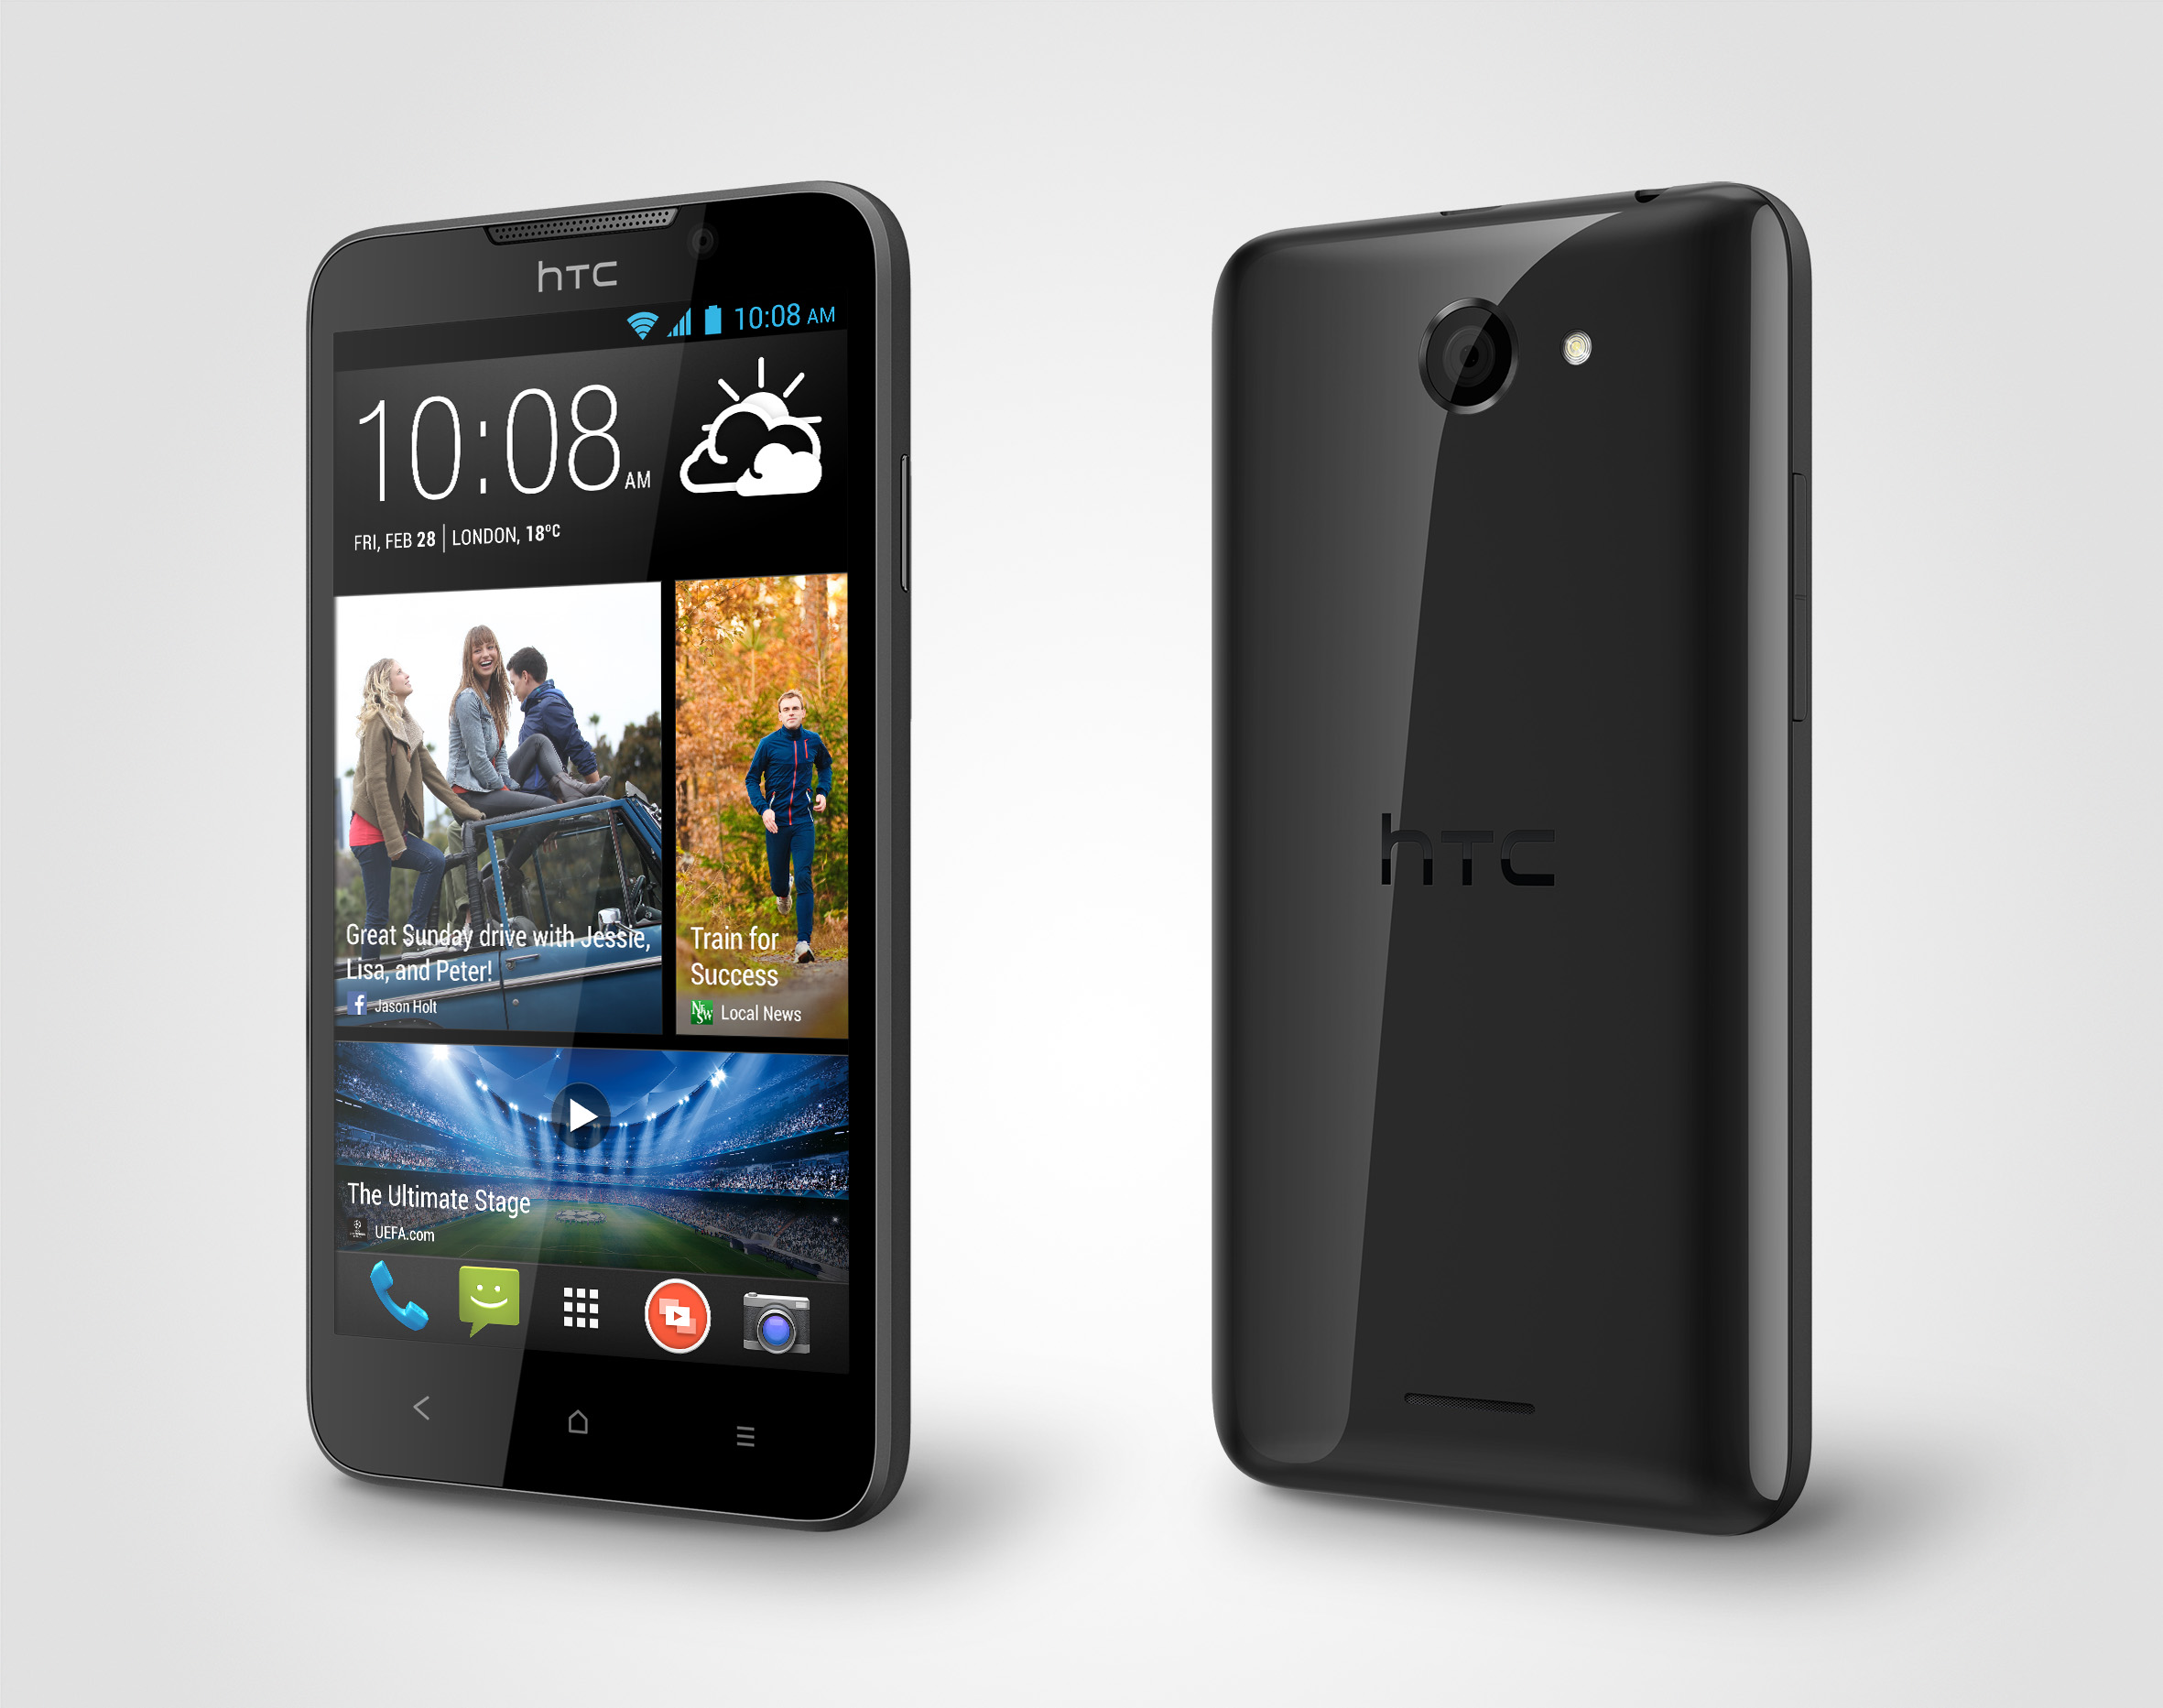 HTC-Desire-516-official-images-1